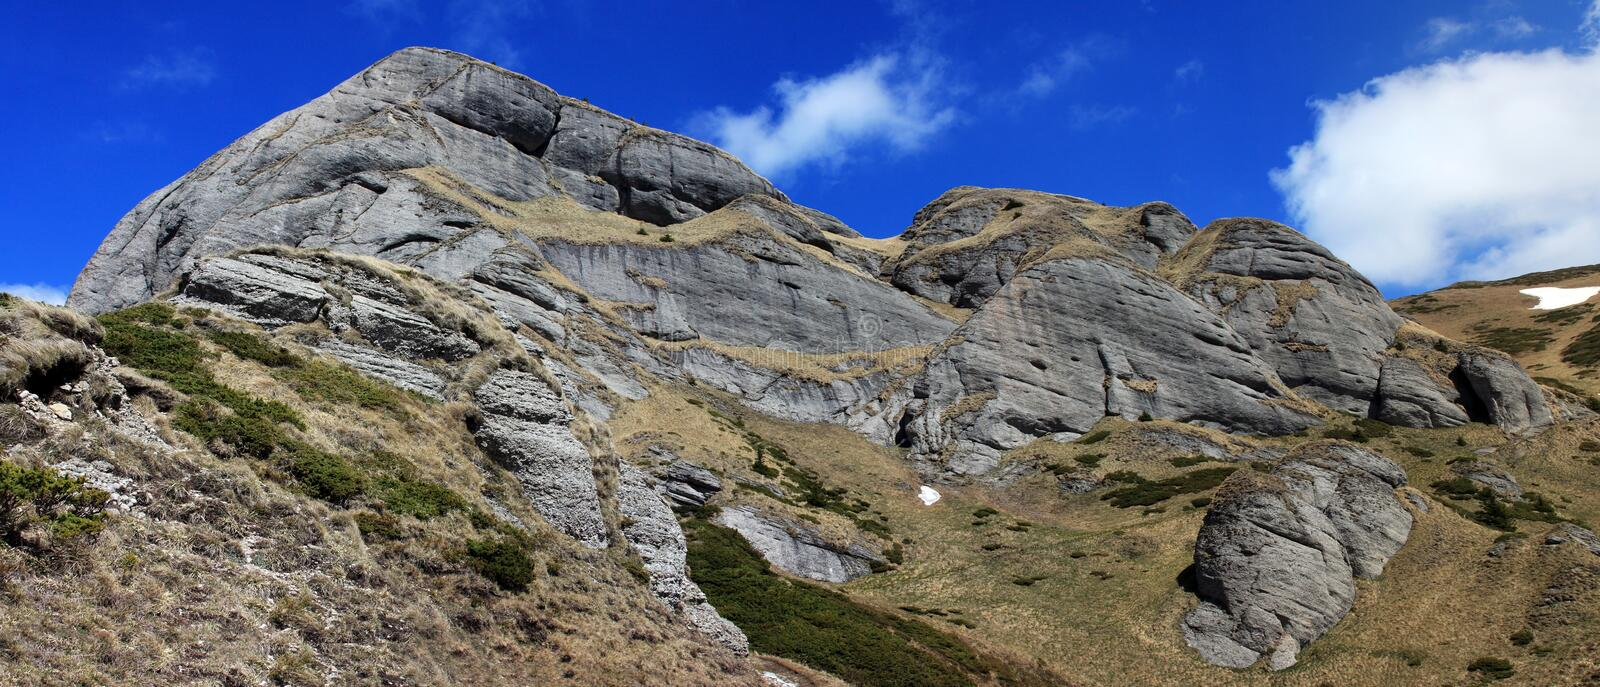 Beautiful rock formations in Ciucas mountains royalty free stock photo